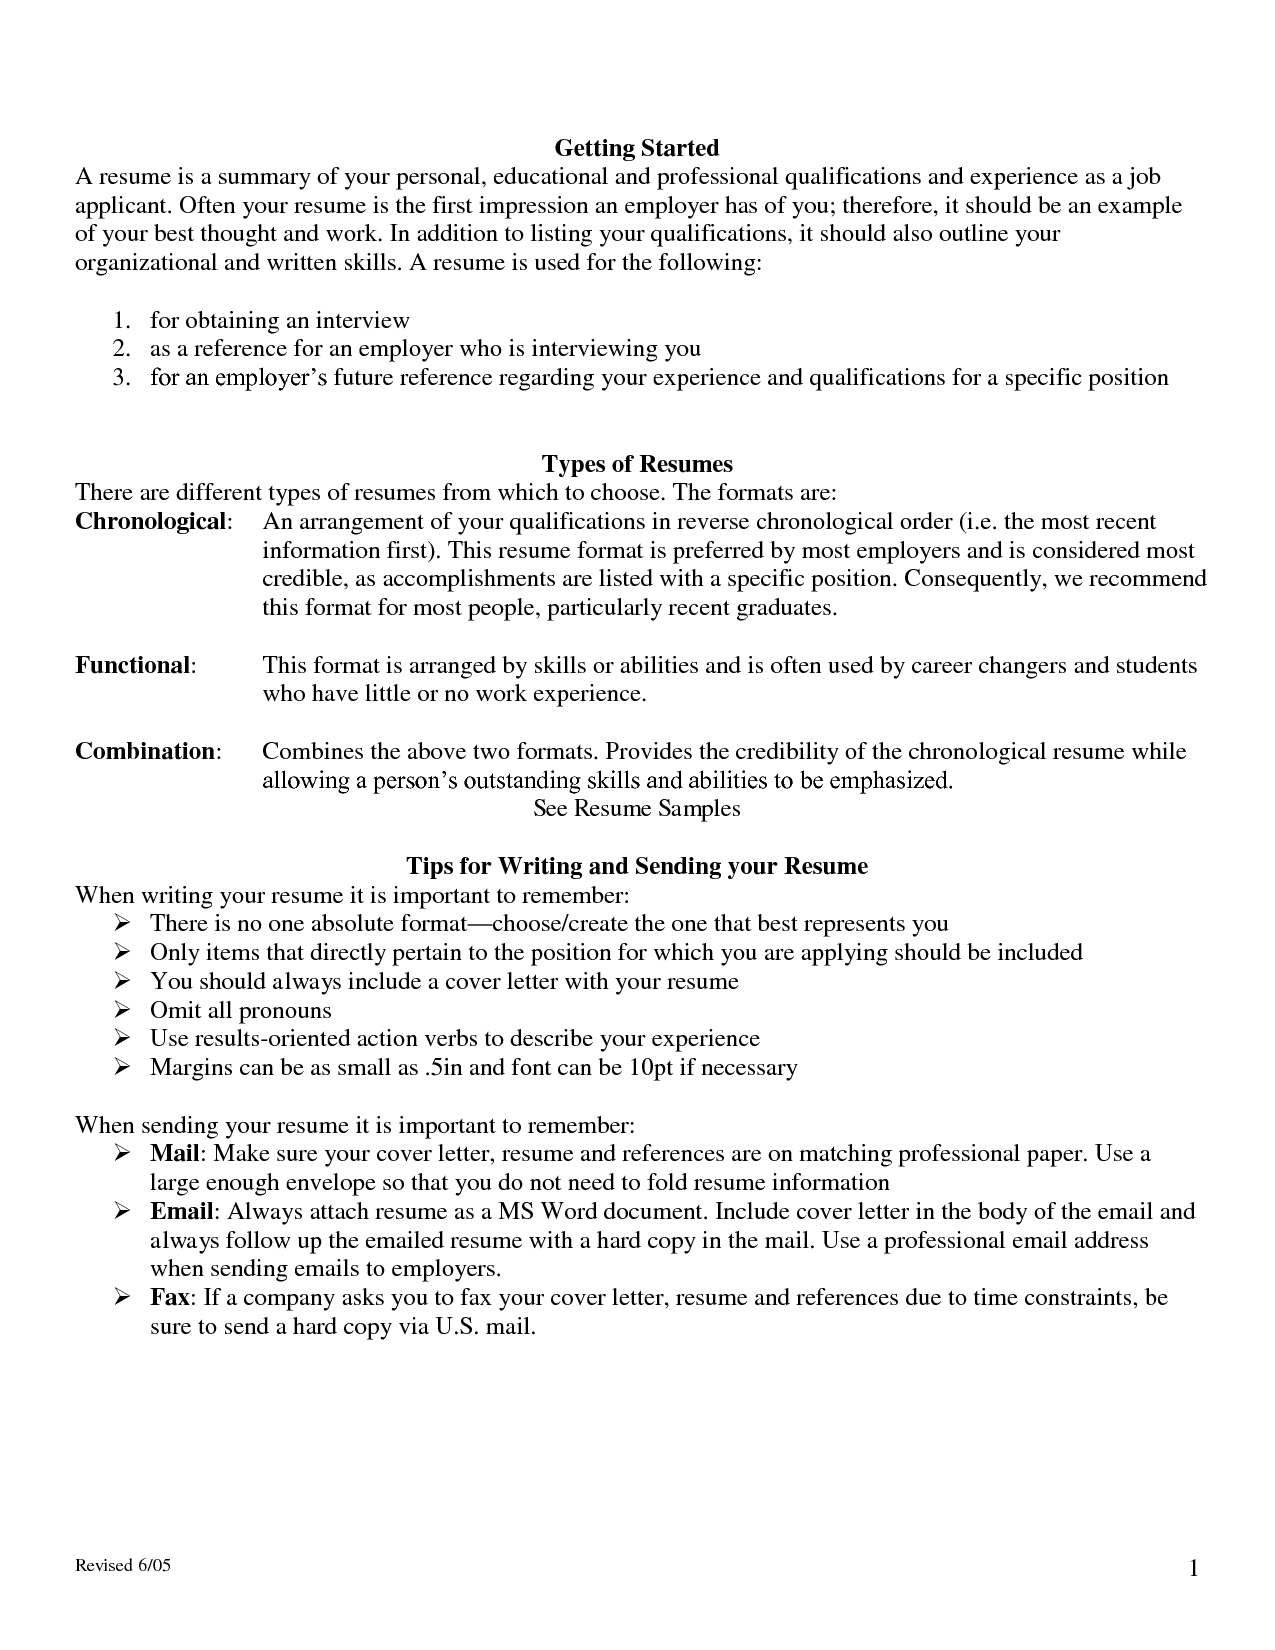 Sample Resume For Entry Level Bank Teller  HttpWww